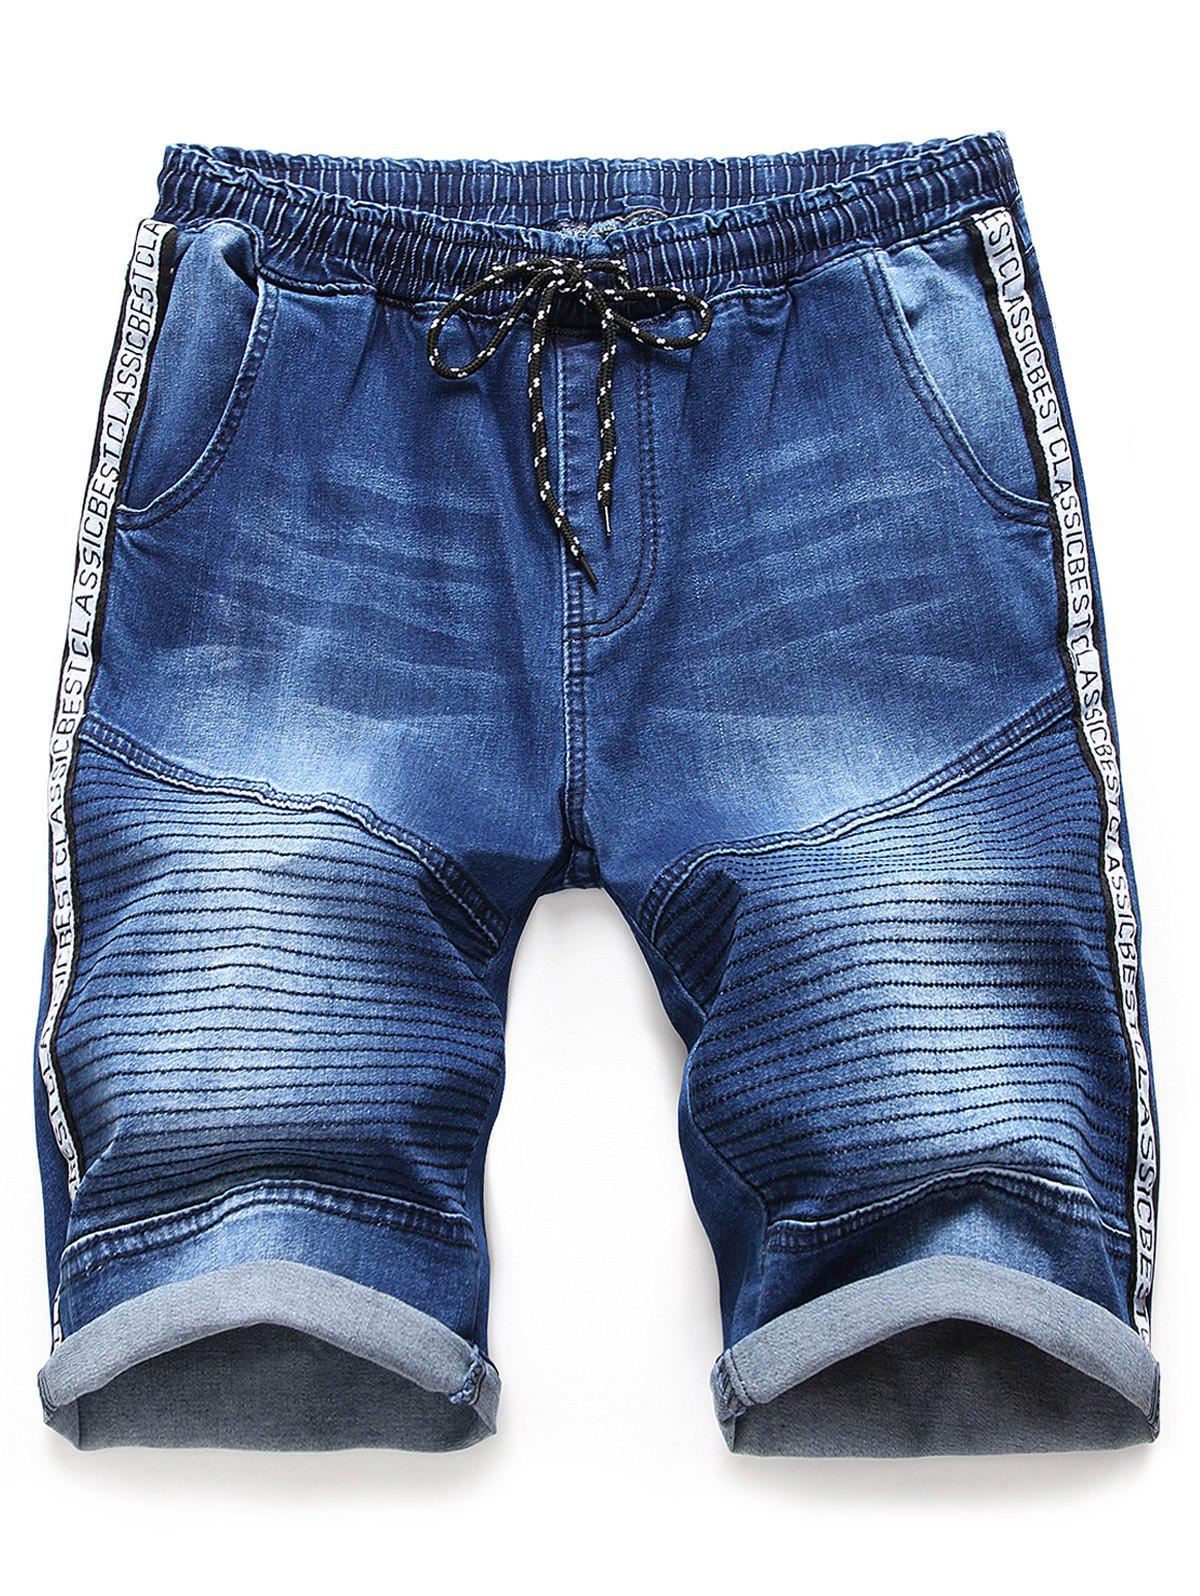 Affordable Letter Print Casual Jeans Shorts